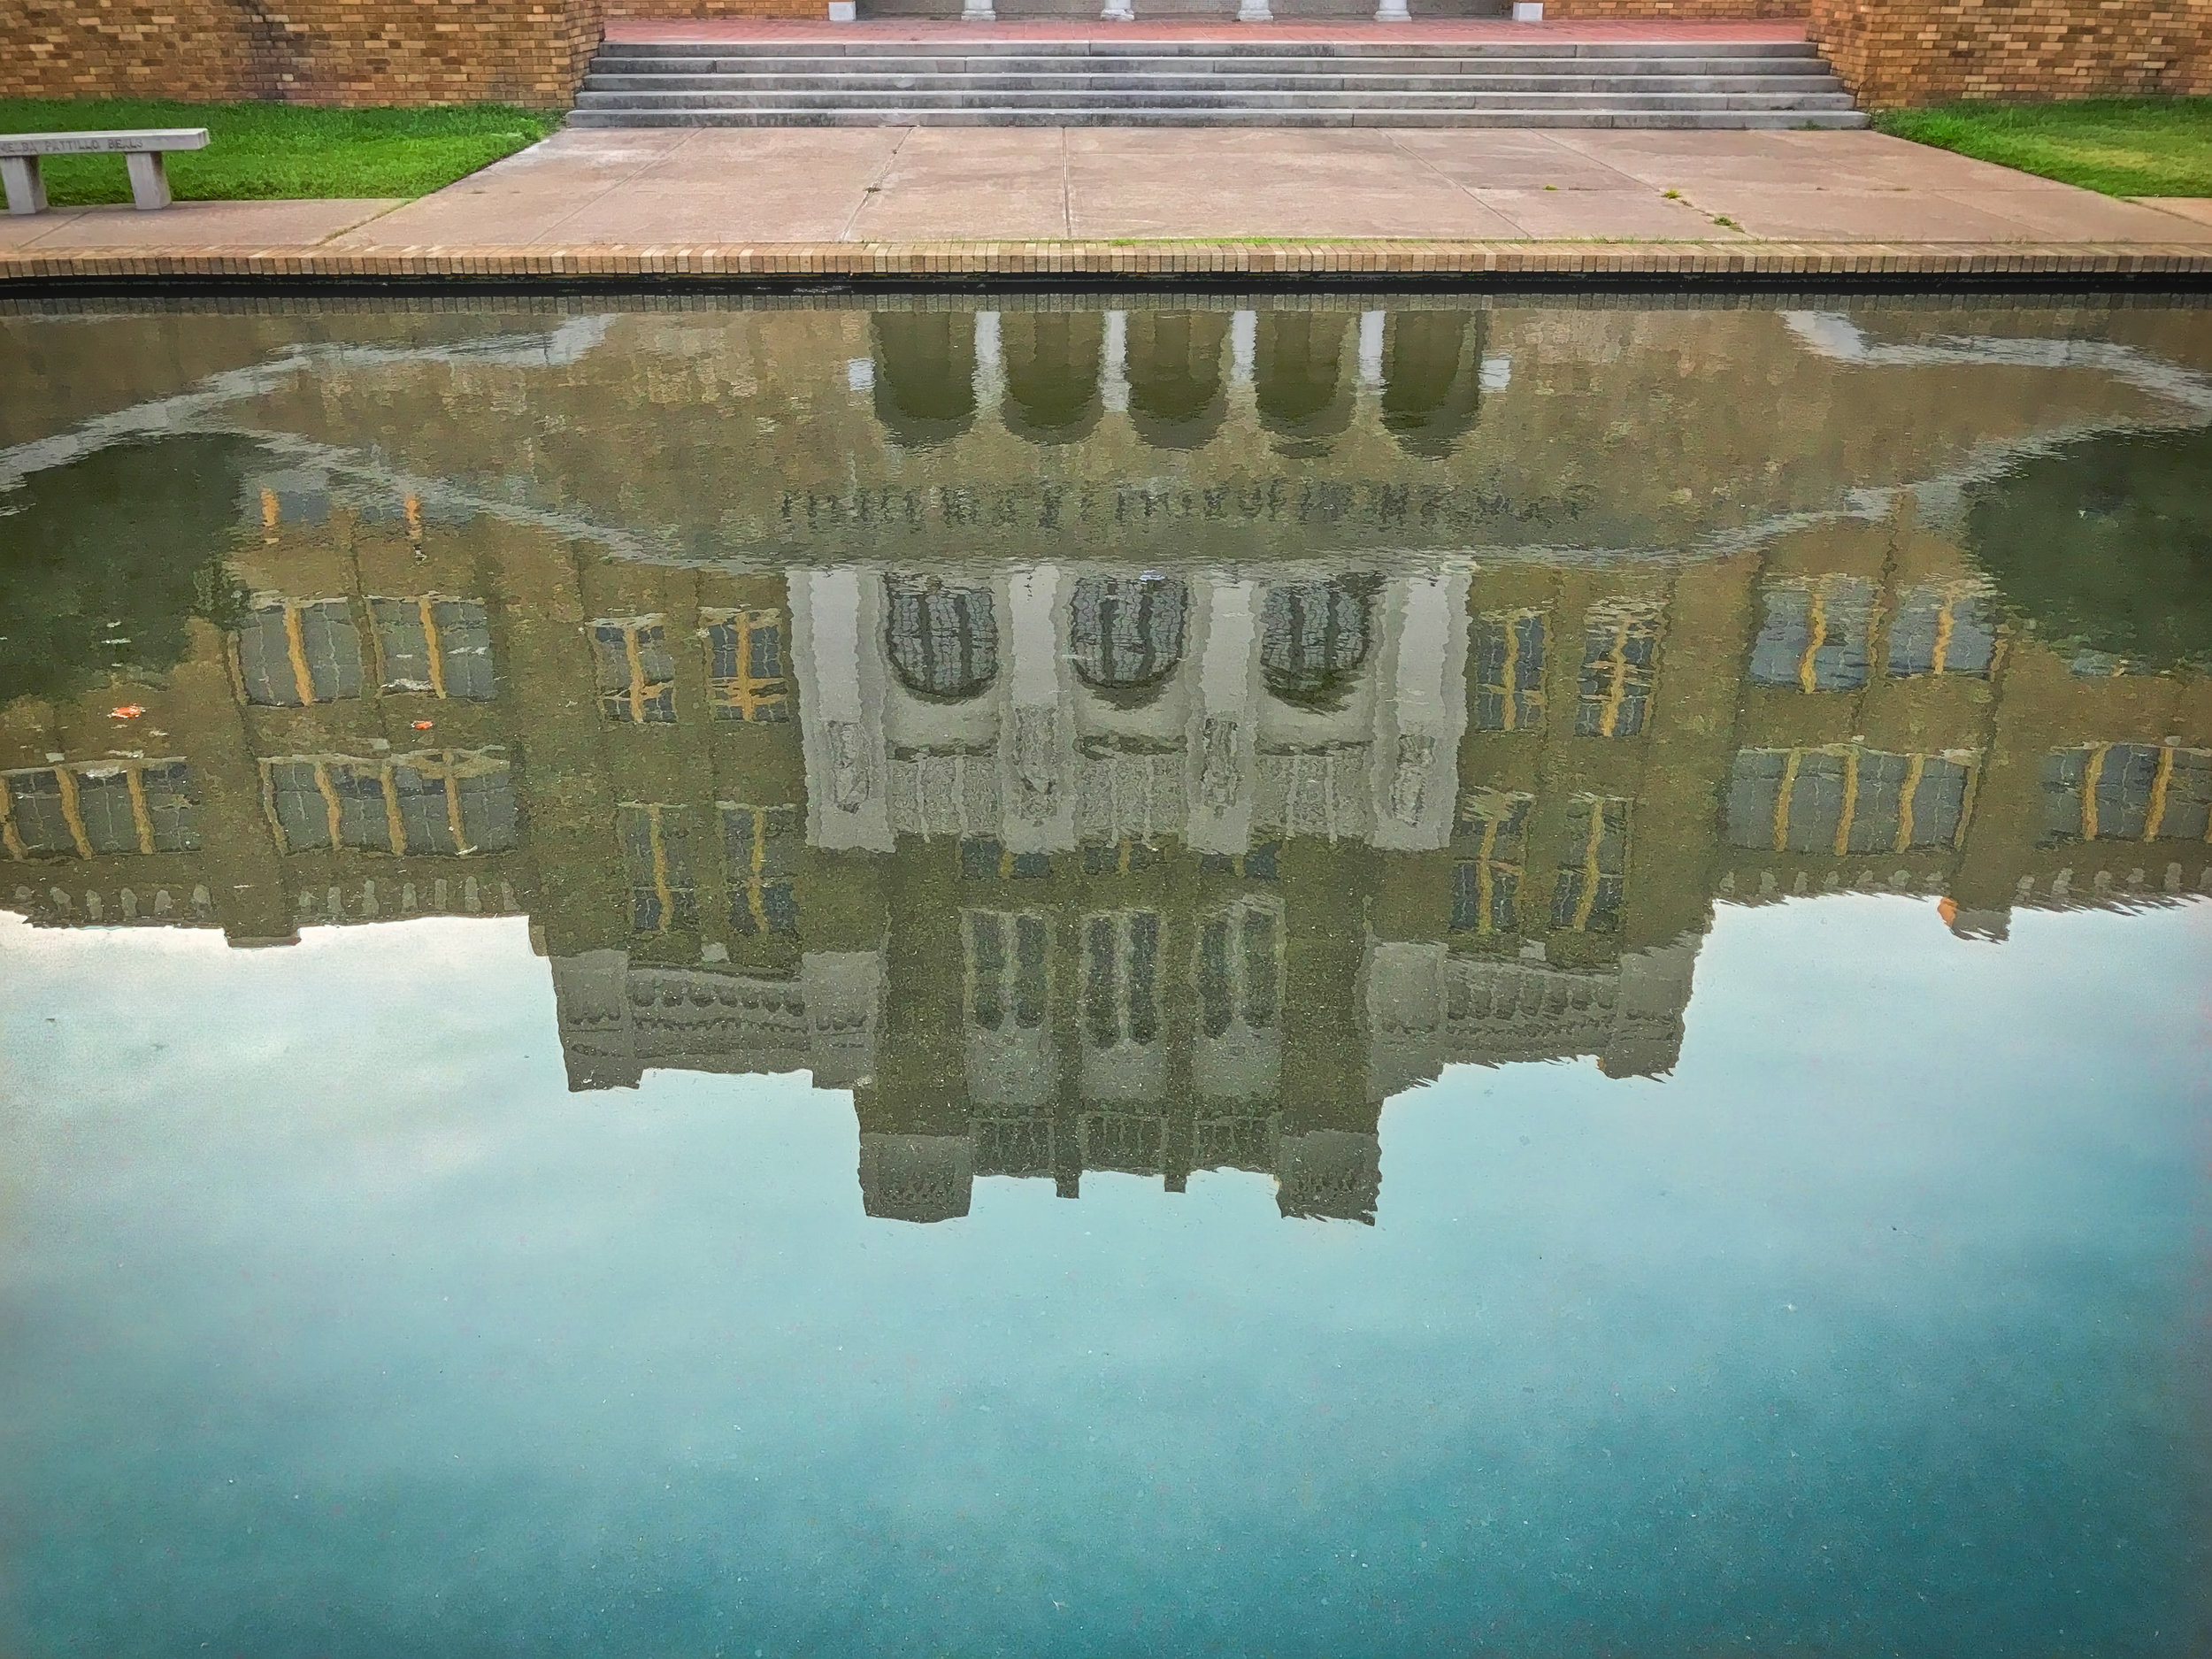 At the edge of the reflecting pool